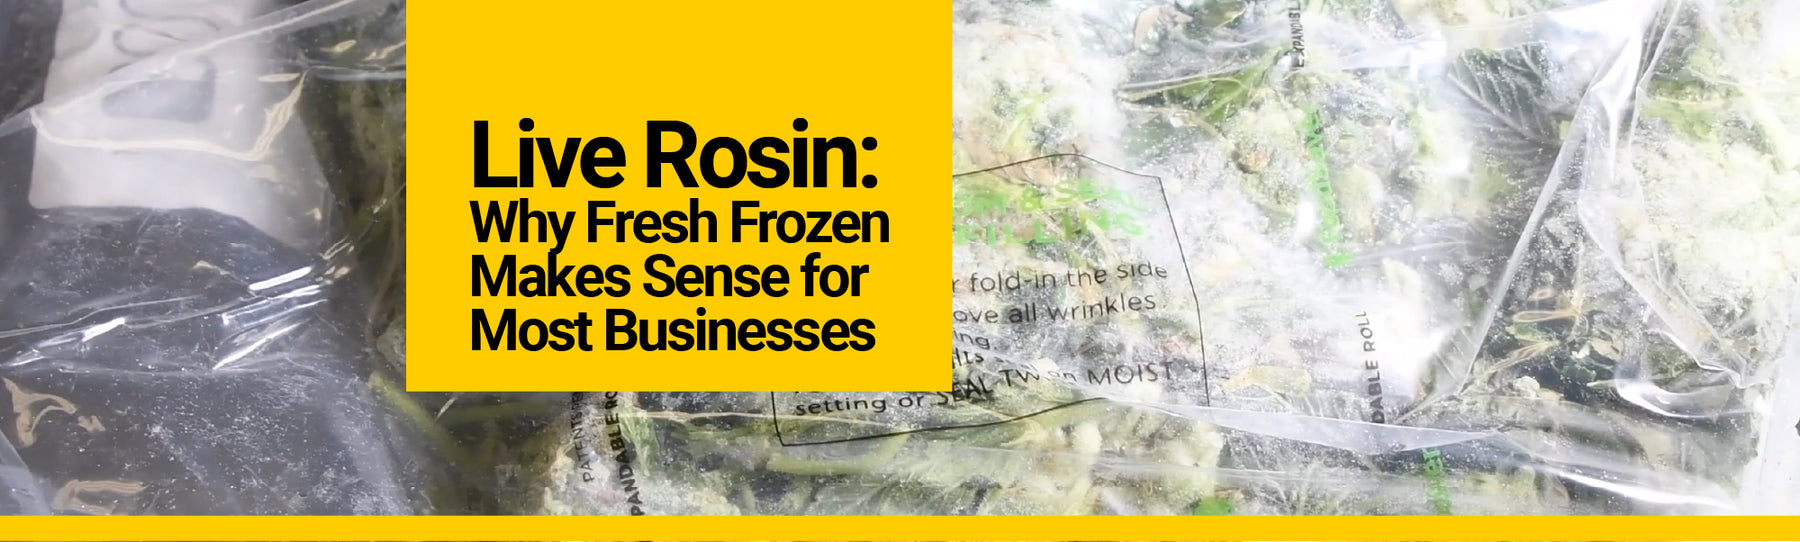 Live Rosin: Why Fresh Frozen Makes Sense for Most Businesses